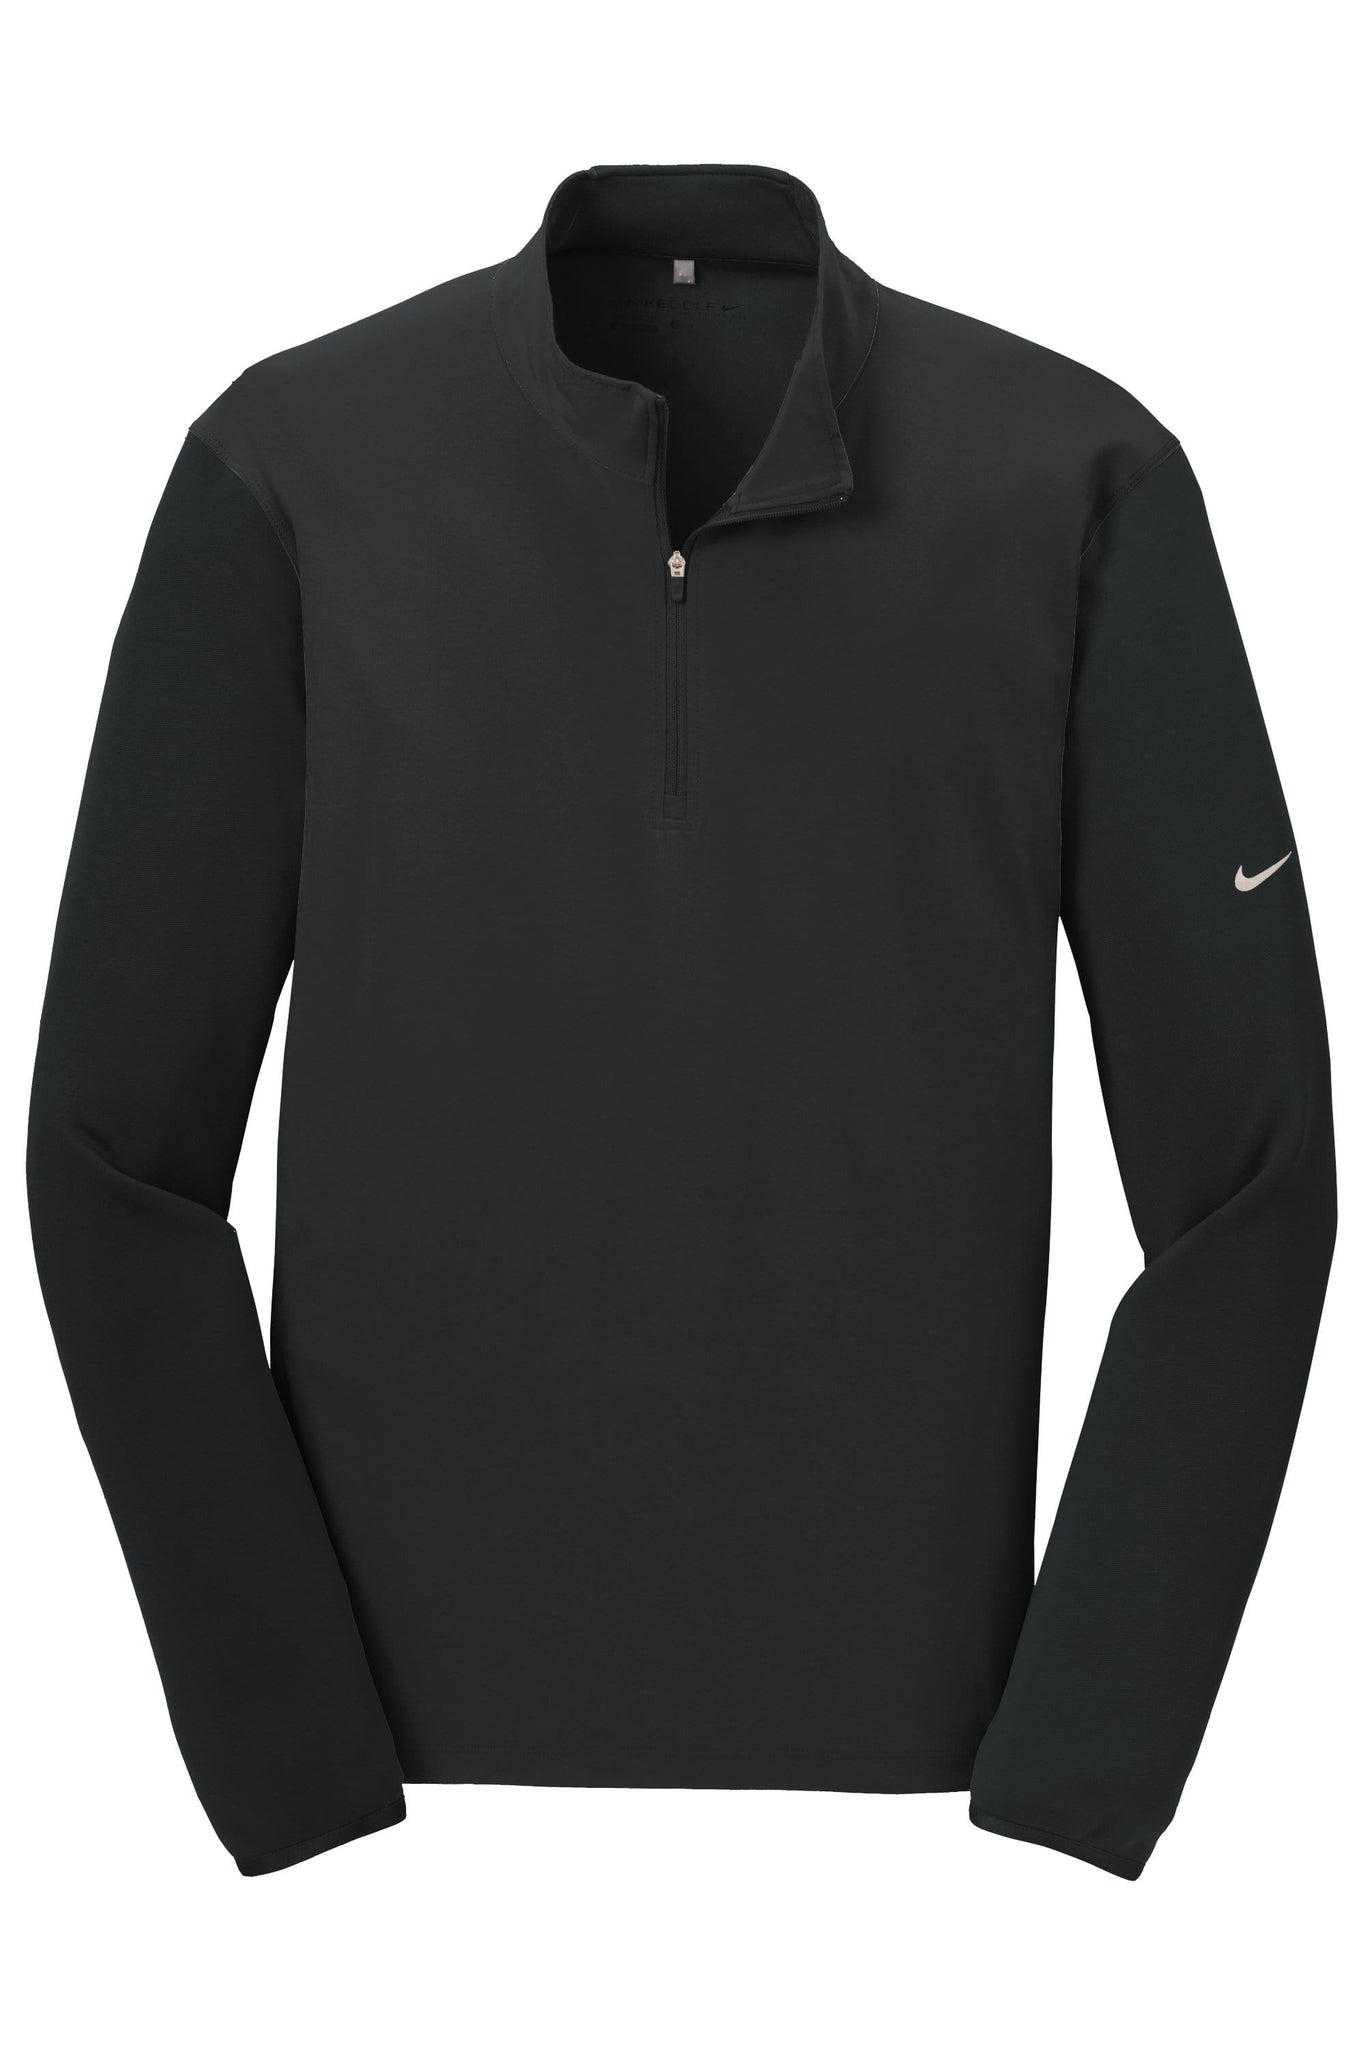 Nike Layering XS / BLACK/BLACK Nike Men's Golf Dri-FIT Fabric Mix 1/2-Zip Cover-Up